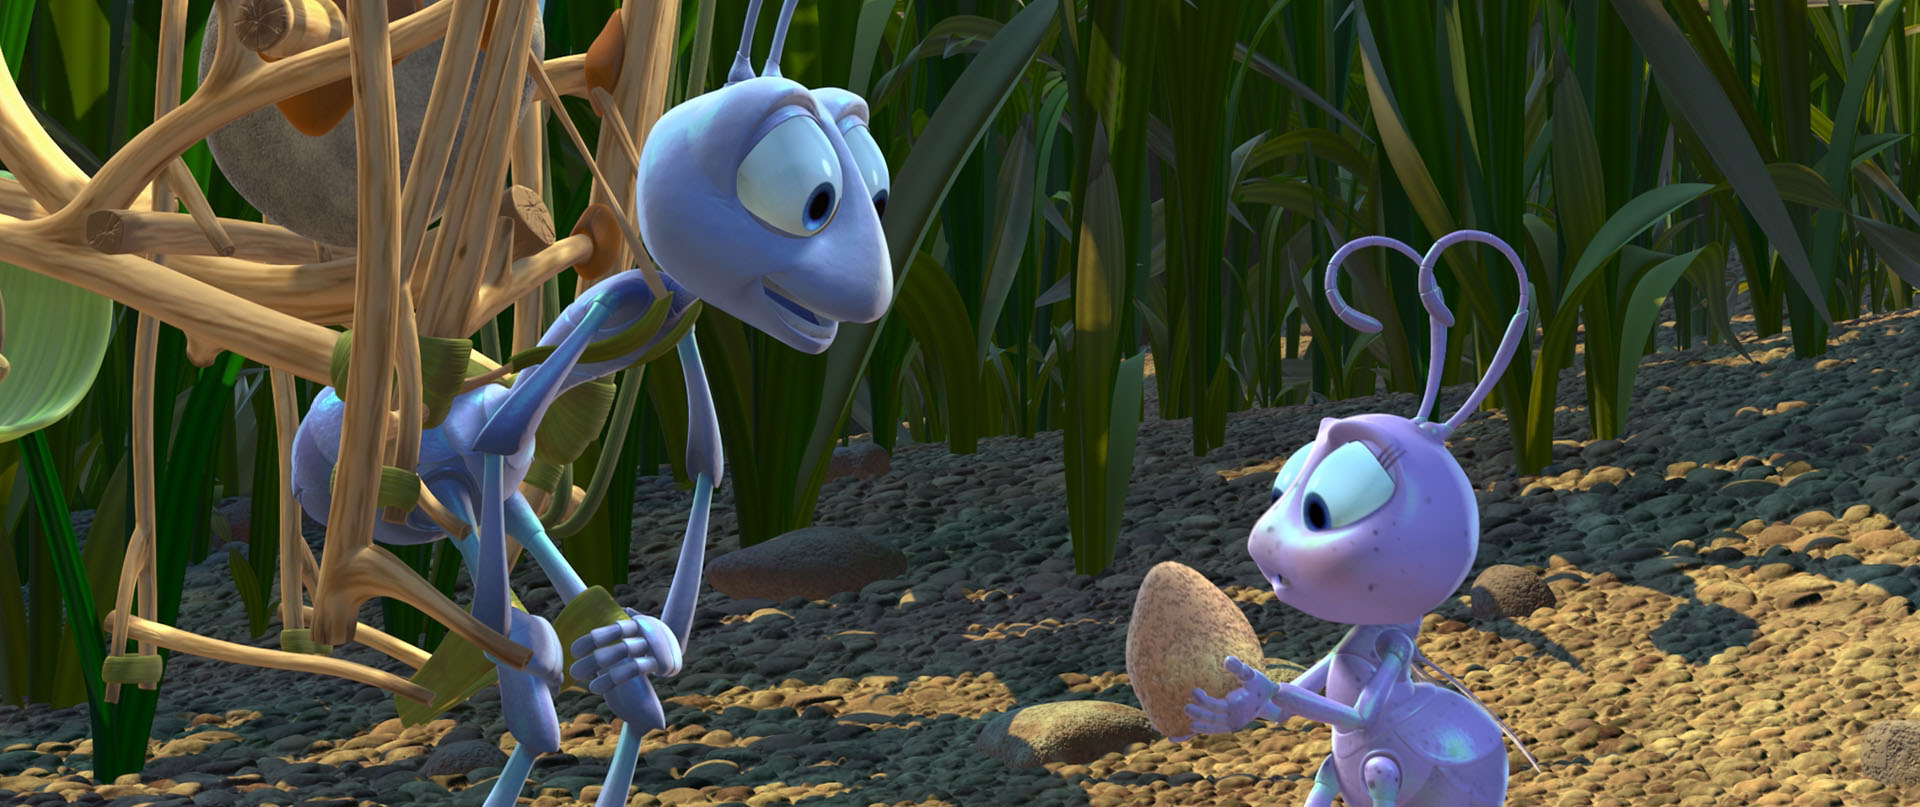 A Bug's Life figures into the theory that all Pixar movies are intertwined.